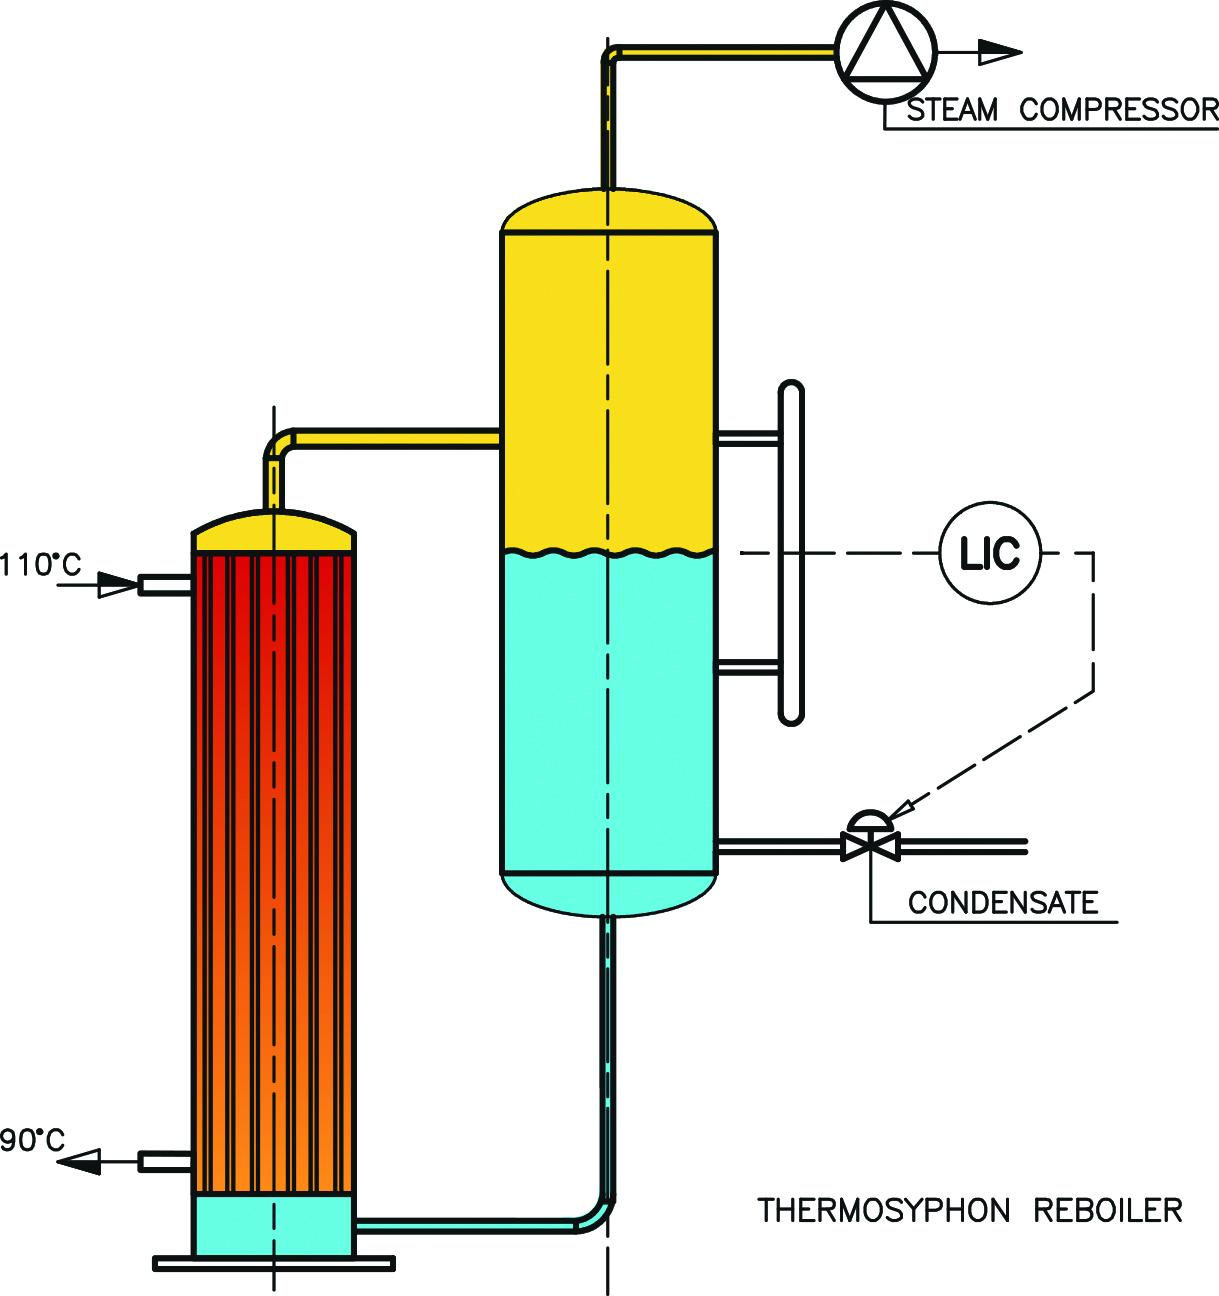 The Thermosyphon reboiler is a vertical heat exchanger that was under consideration for the factory project